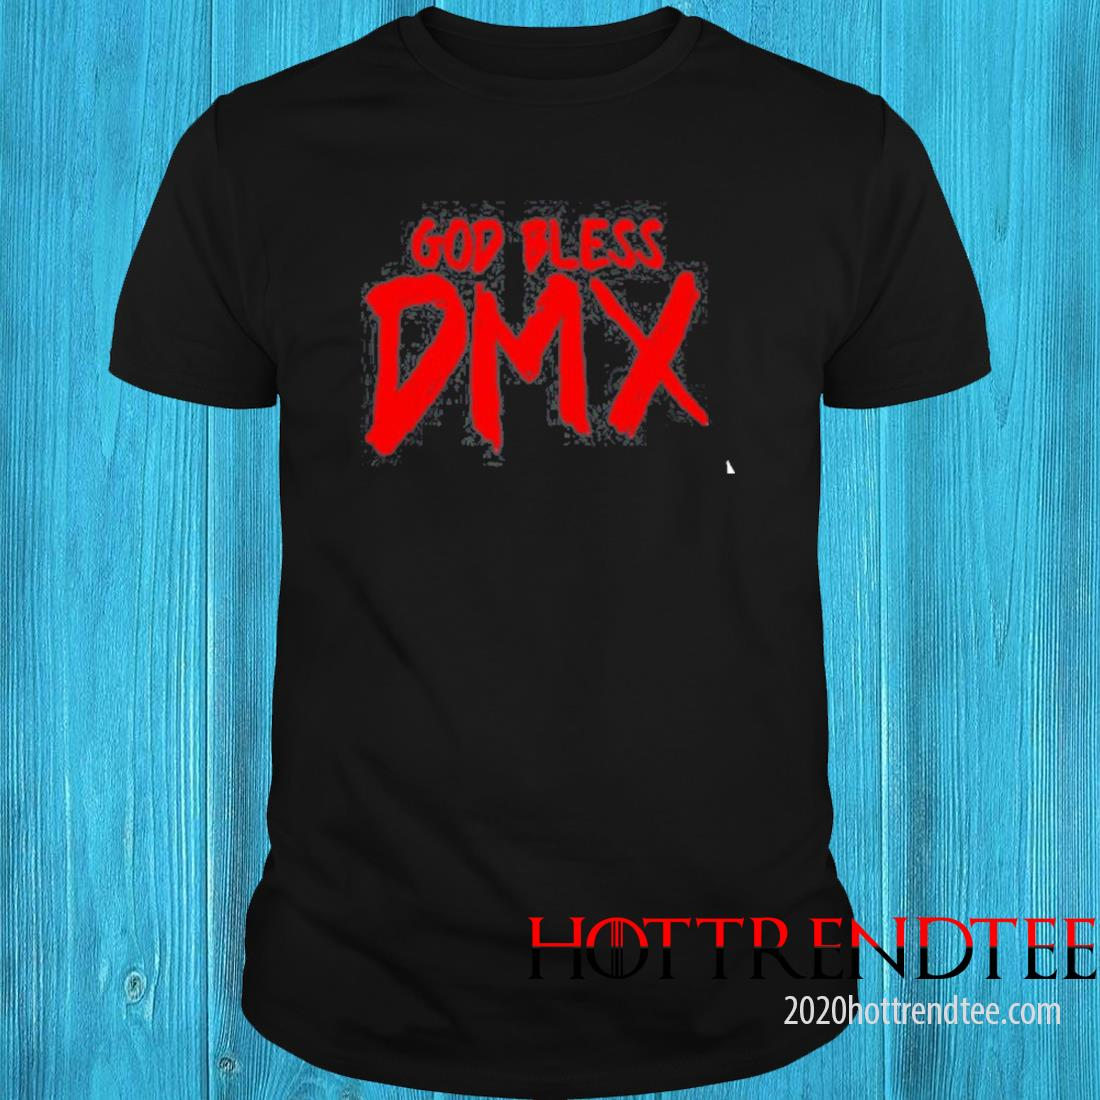 God Bless DMX Shirt